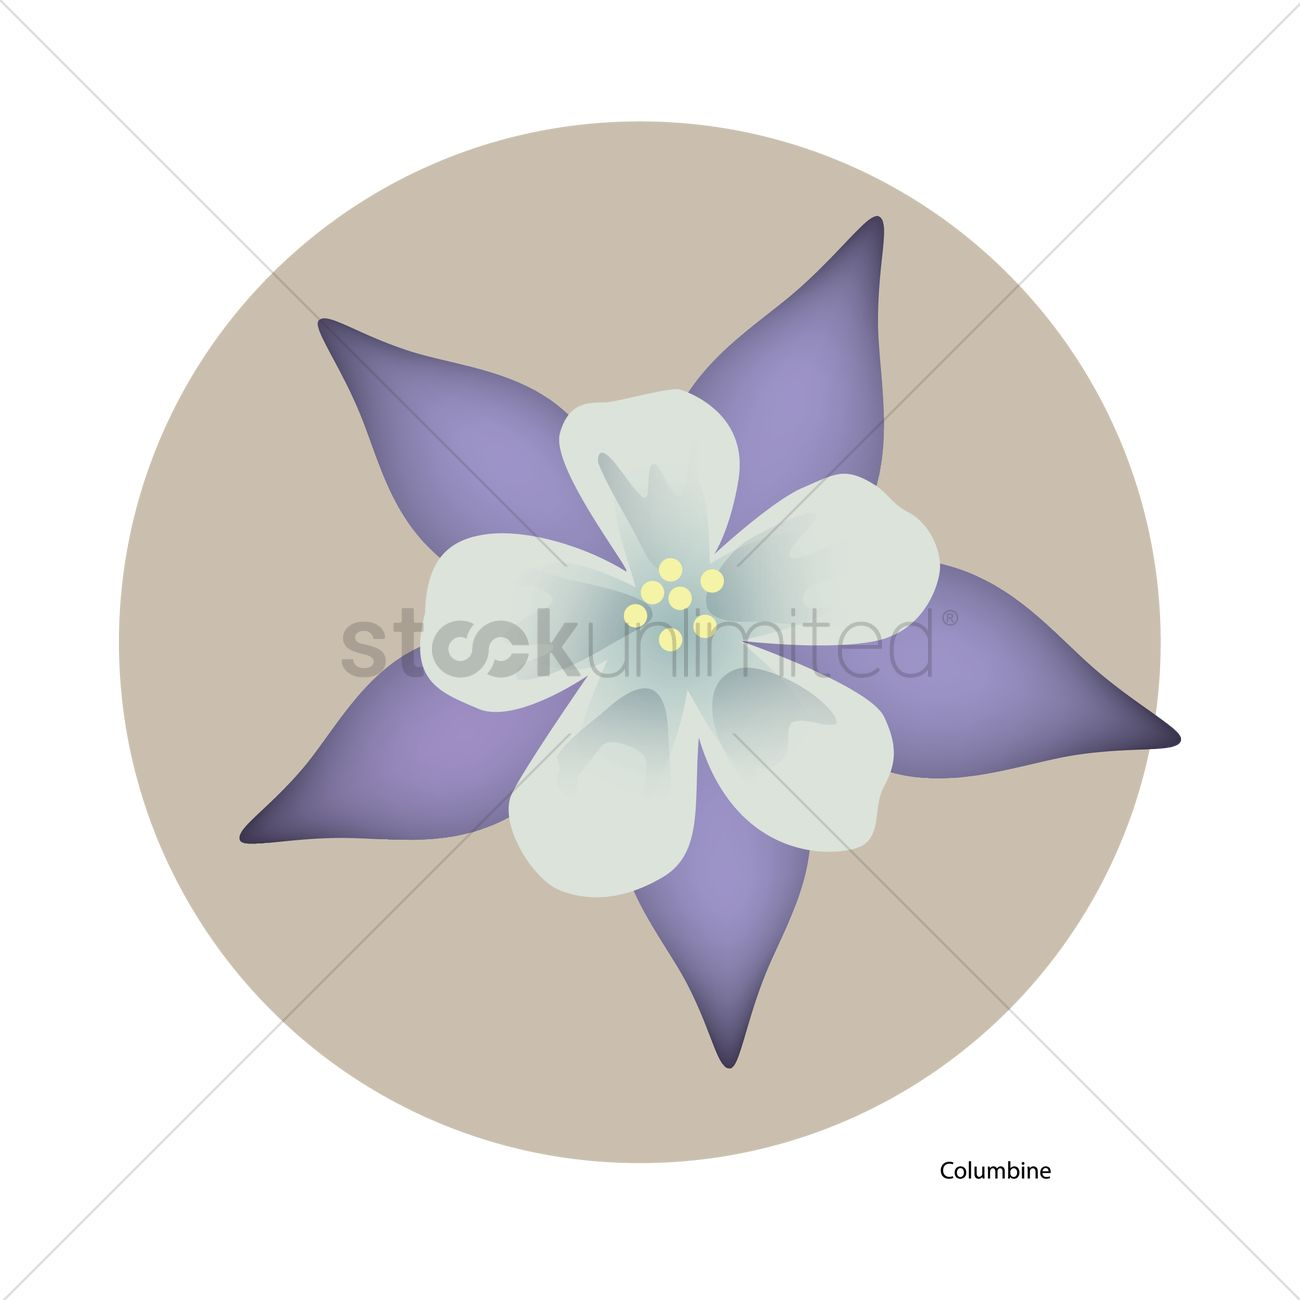 Columbine flower vector image 1431633 stockunlimited columbine flower vector graphic izmirmasajfo